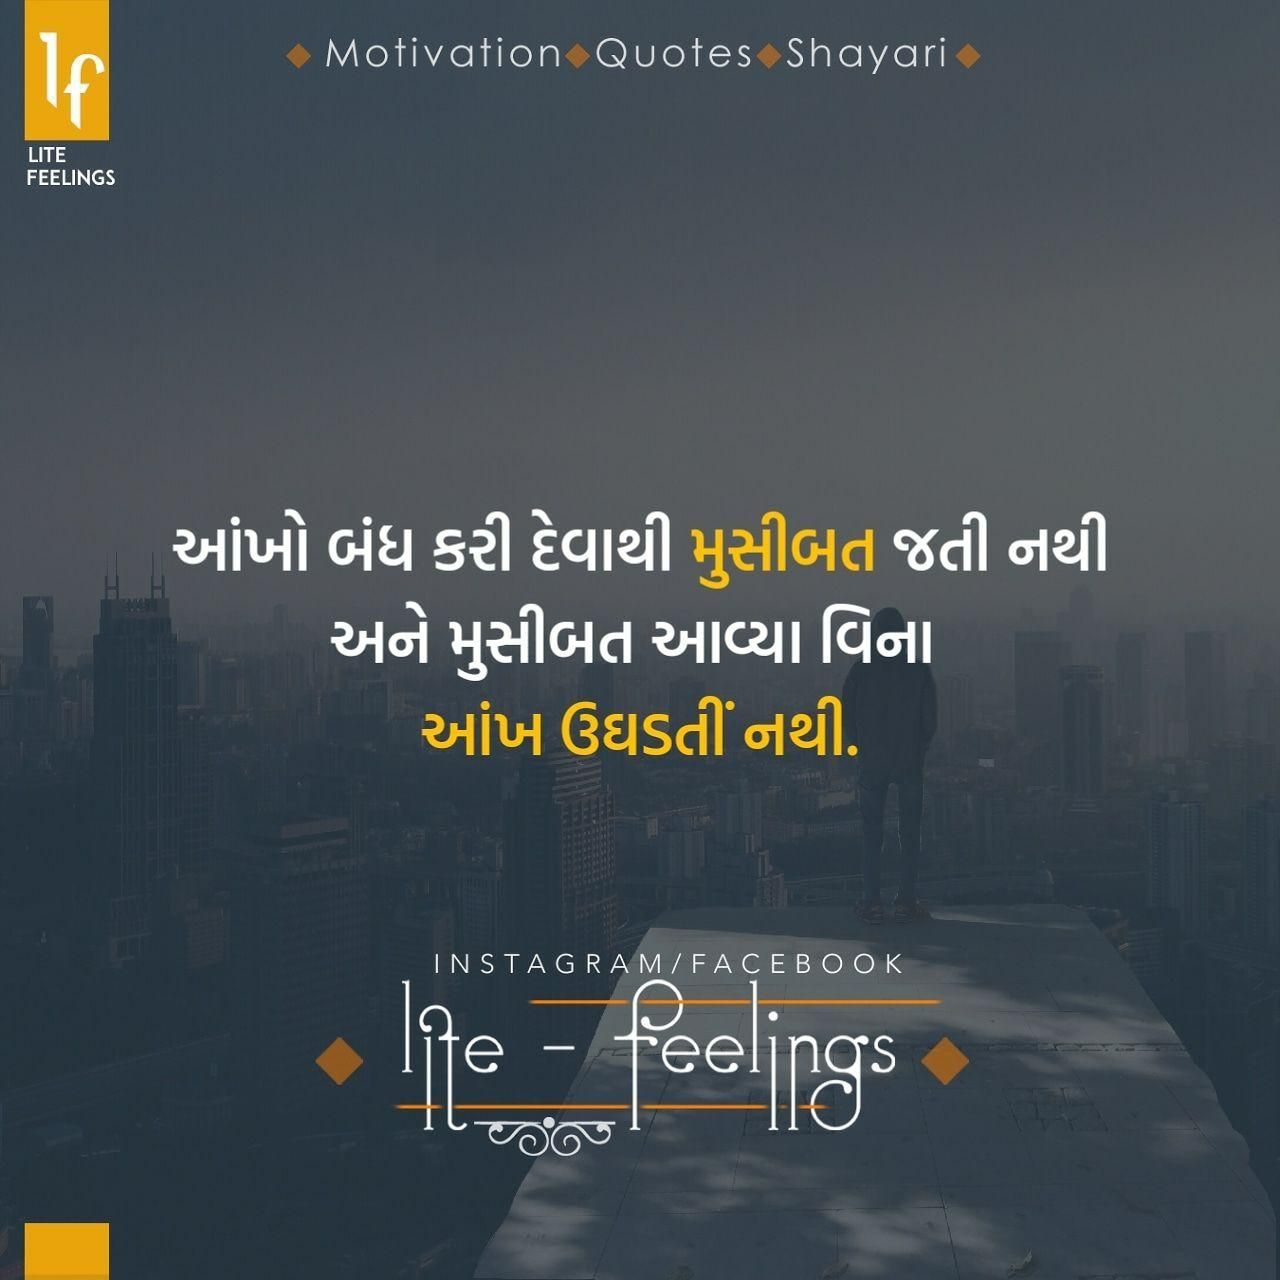 Life quotes image by Lite_feelings on Gujarati quotes